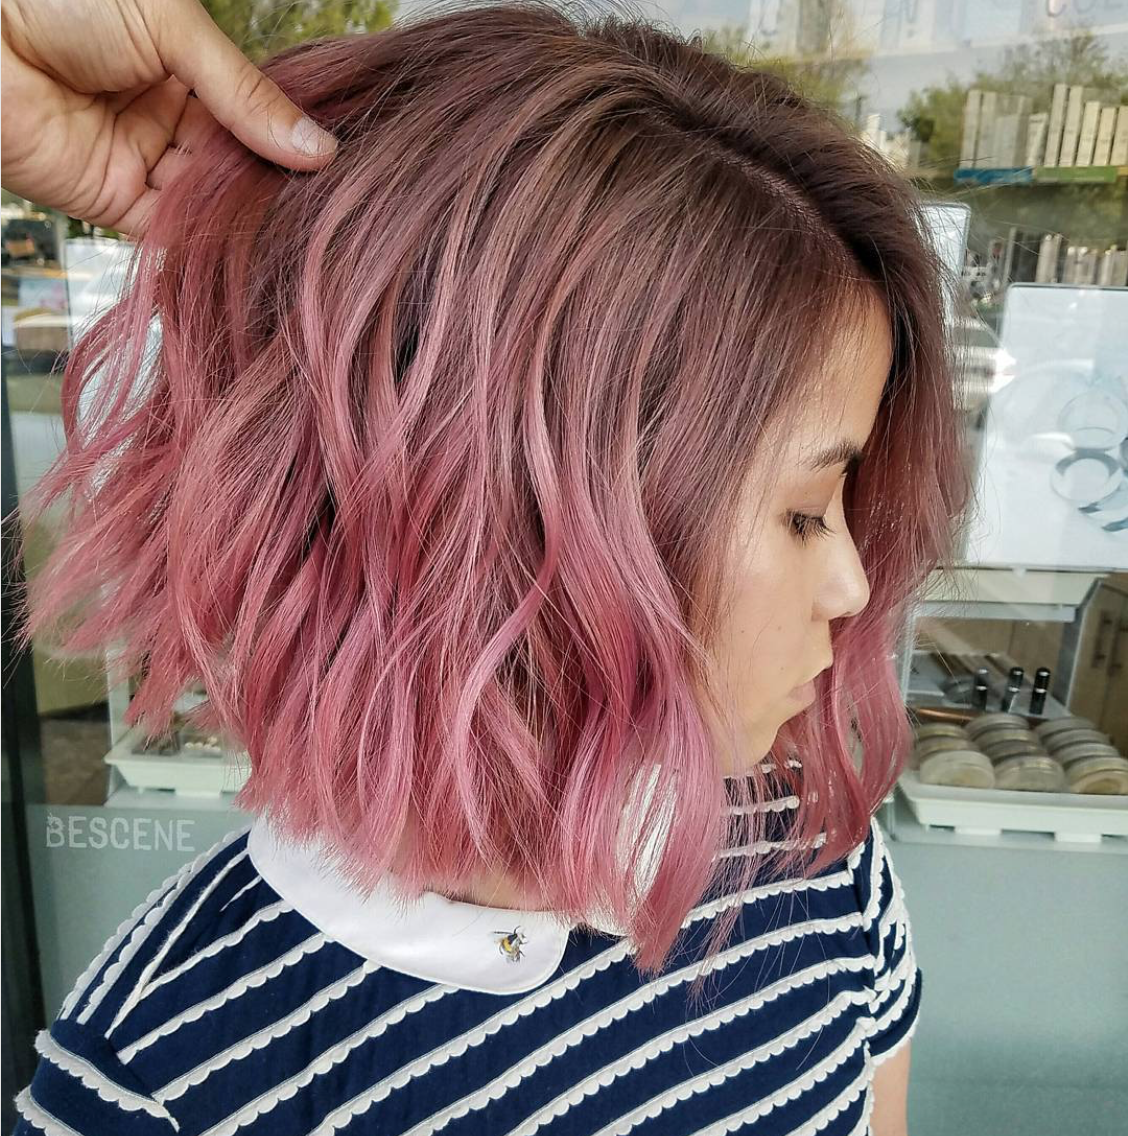 10 Short Ombré Hairstyles We Love